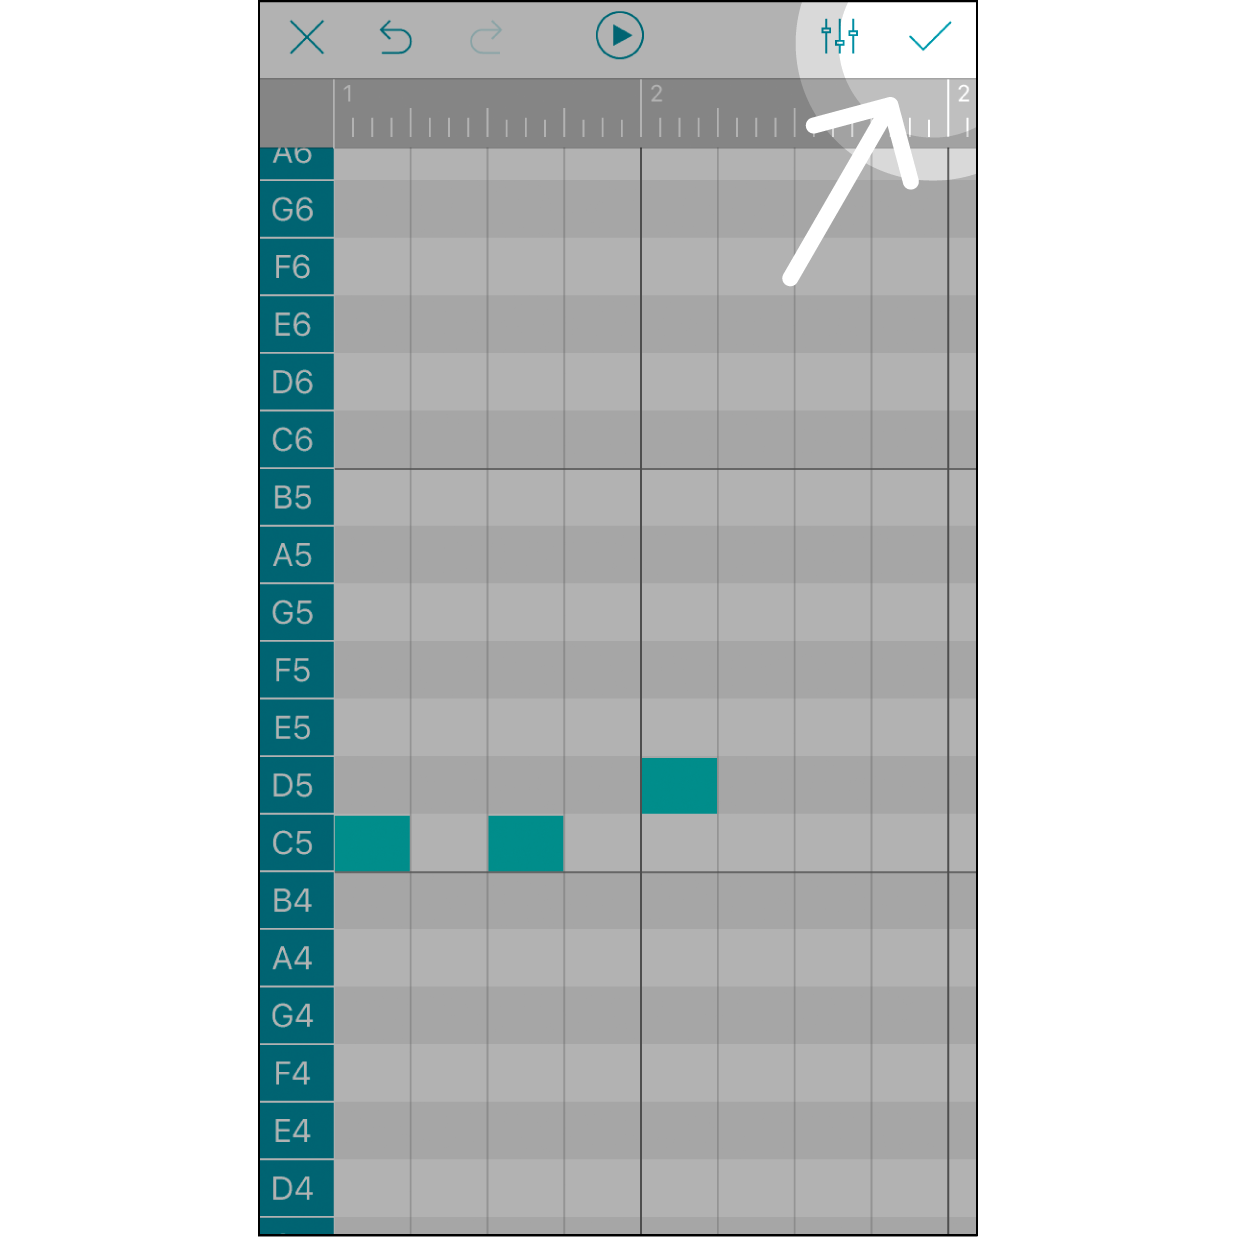 """Finish Editing and Save the MelodyAfter finishing editing the melody, click the """"✓"""" on the upper right corner to save it before leaving this step."""